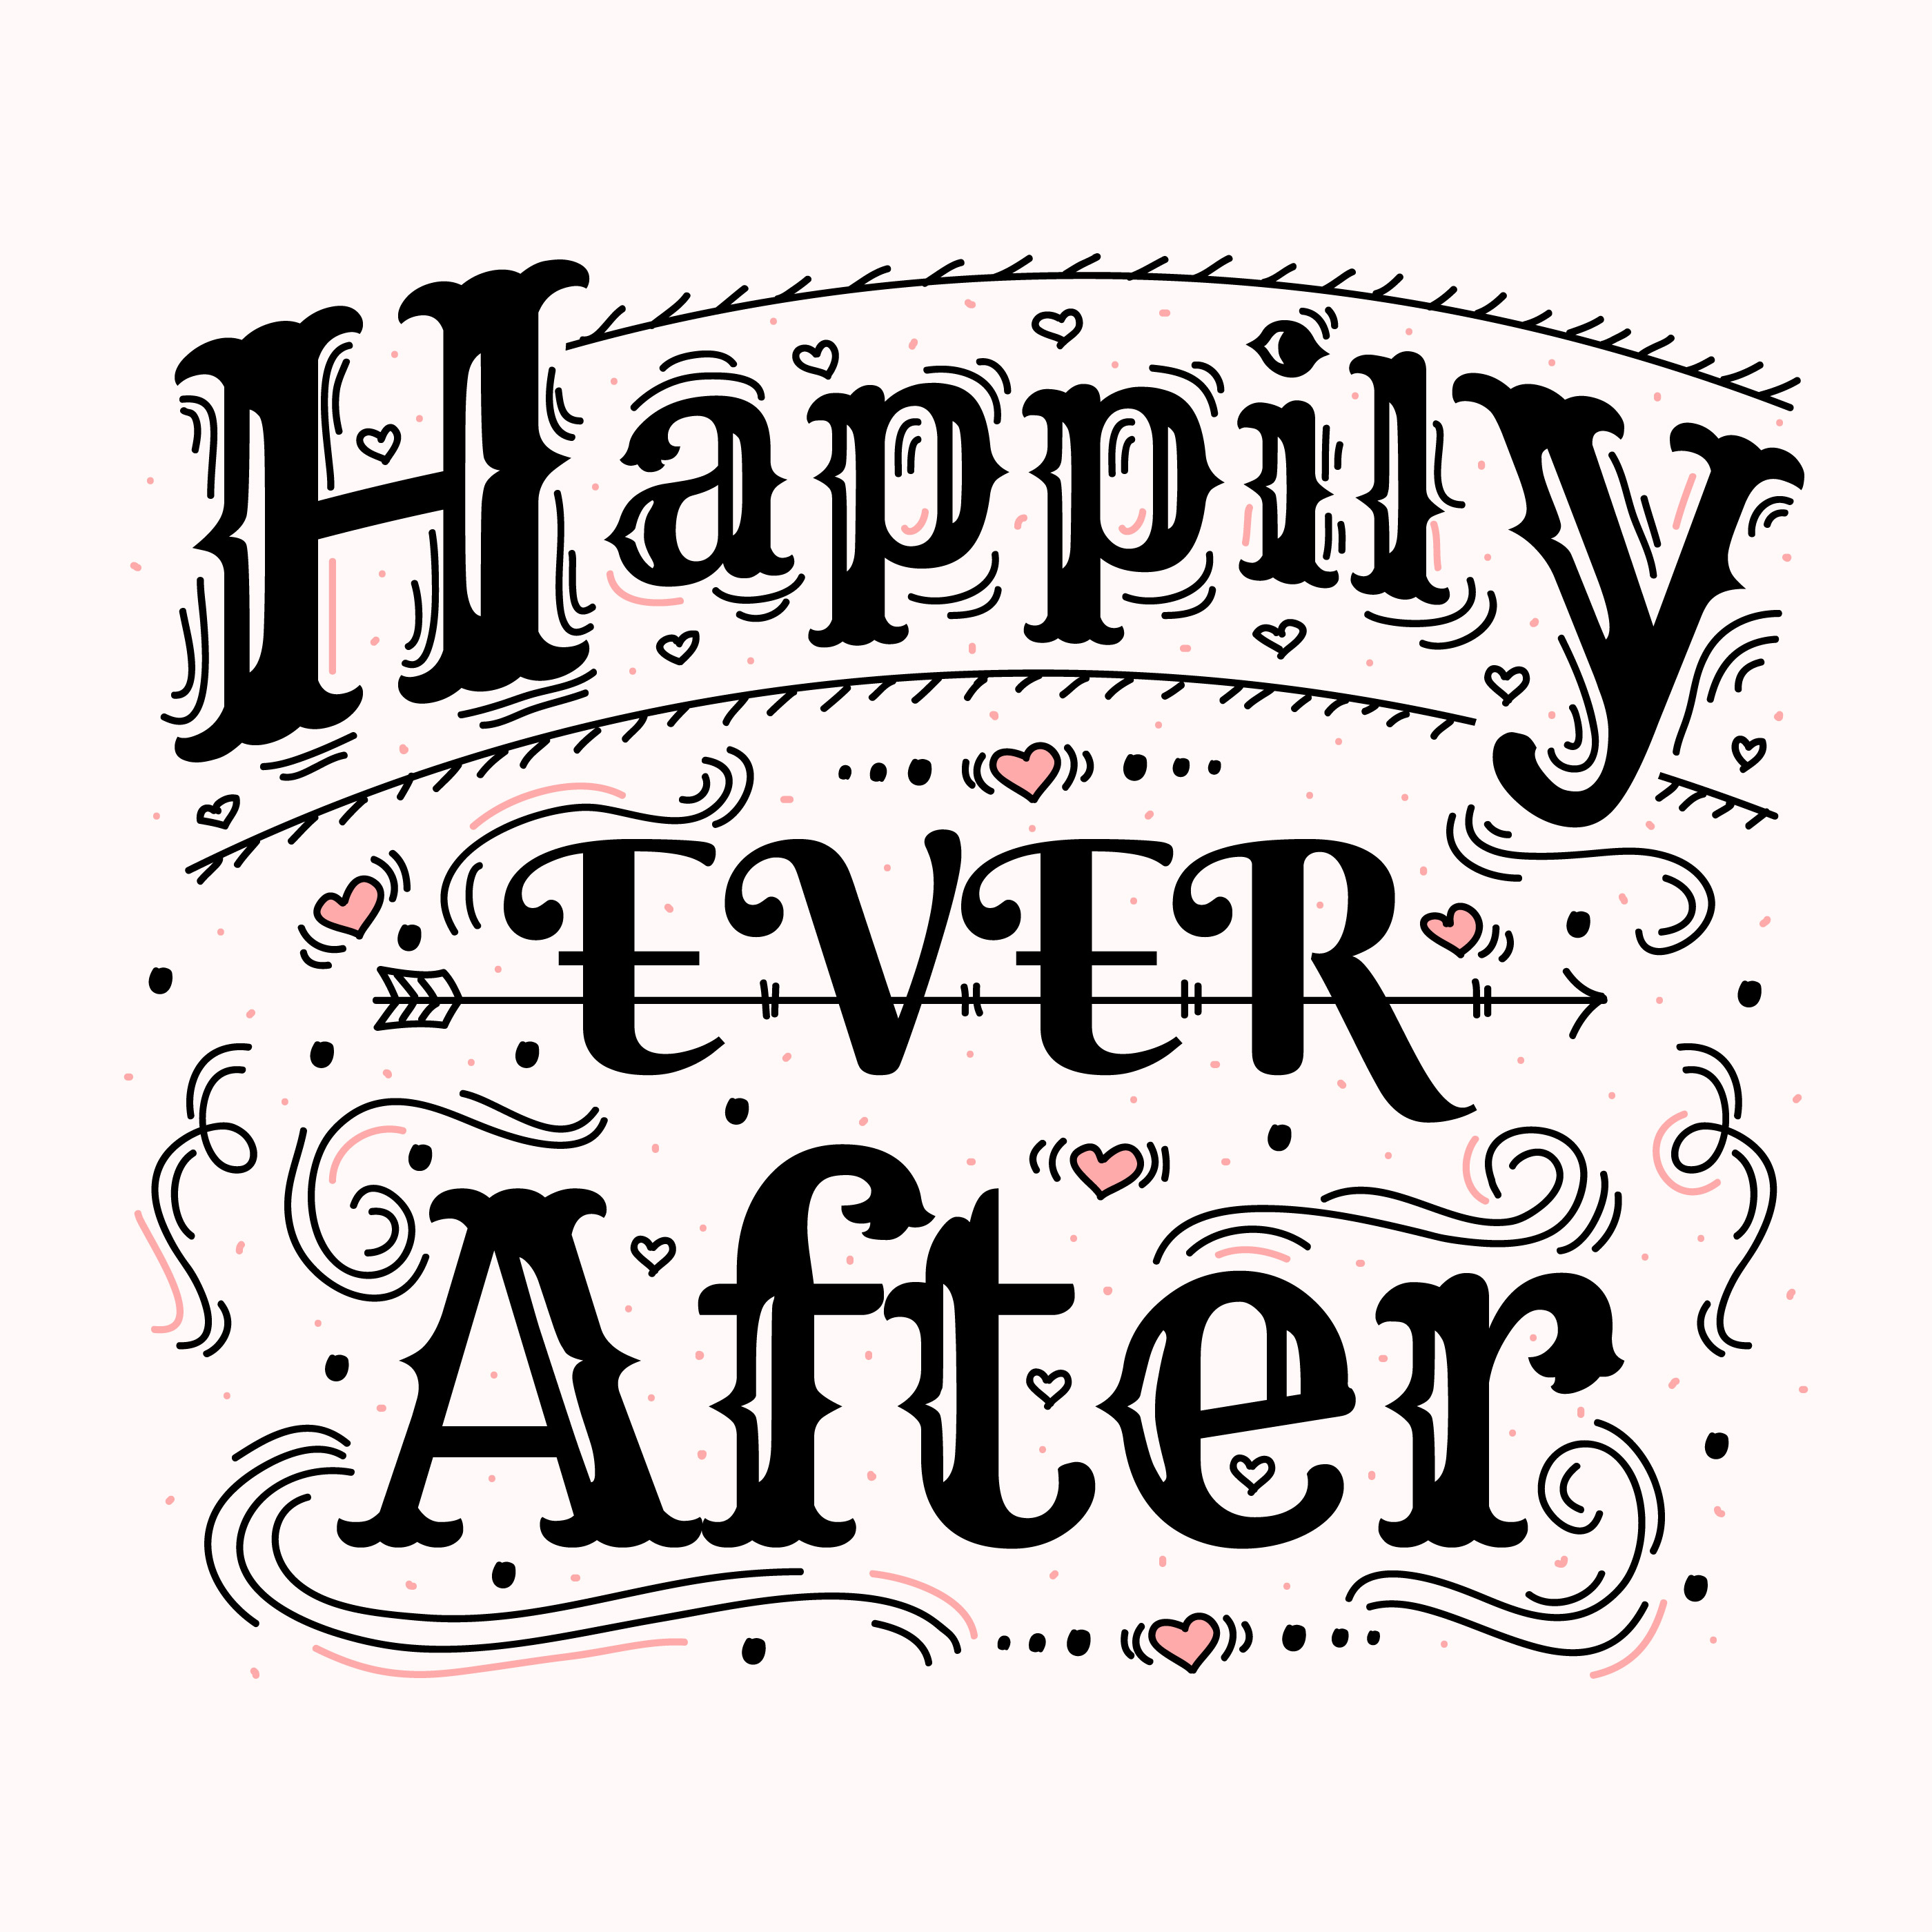 Download To Love Laughter And Happily Ever After Svg SVG